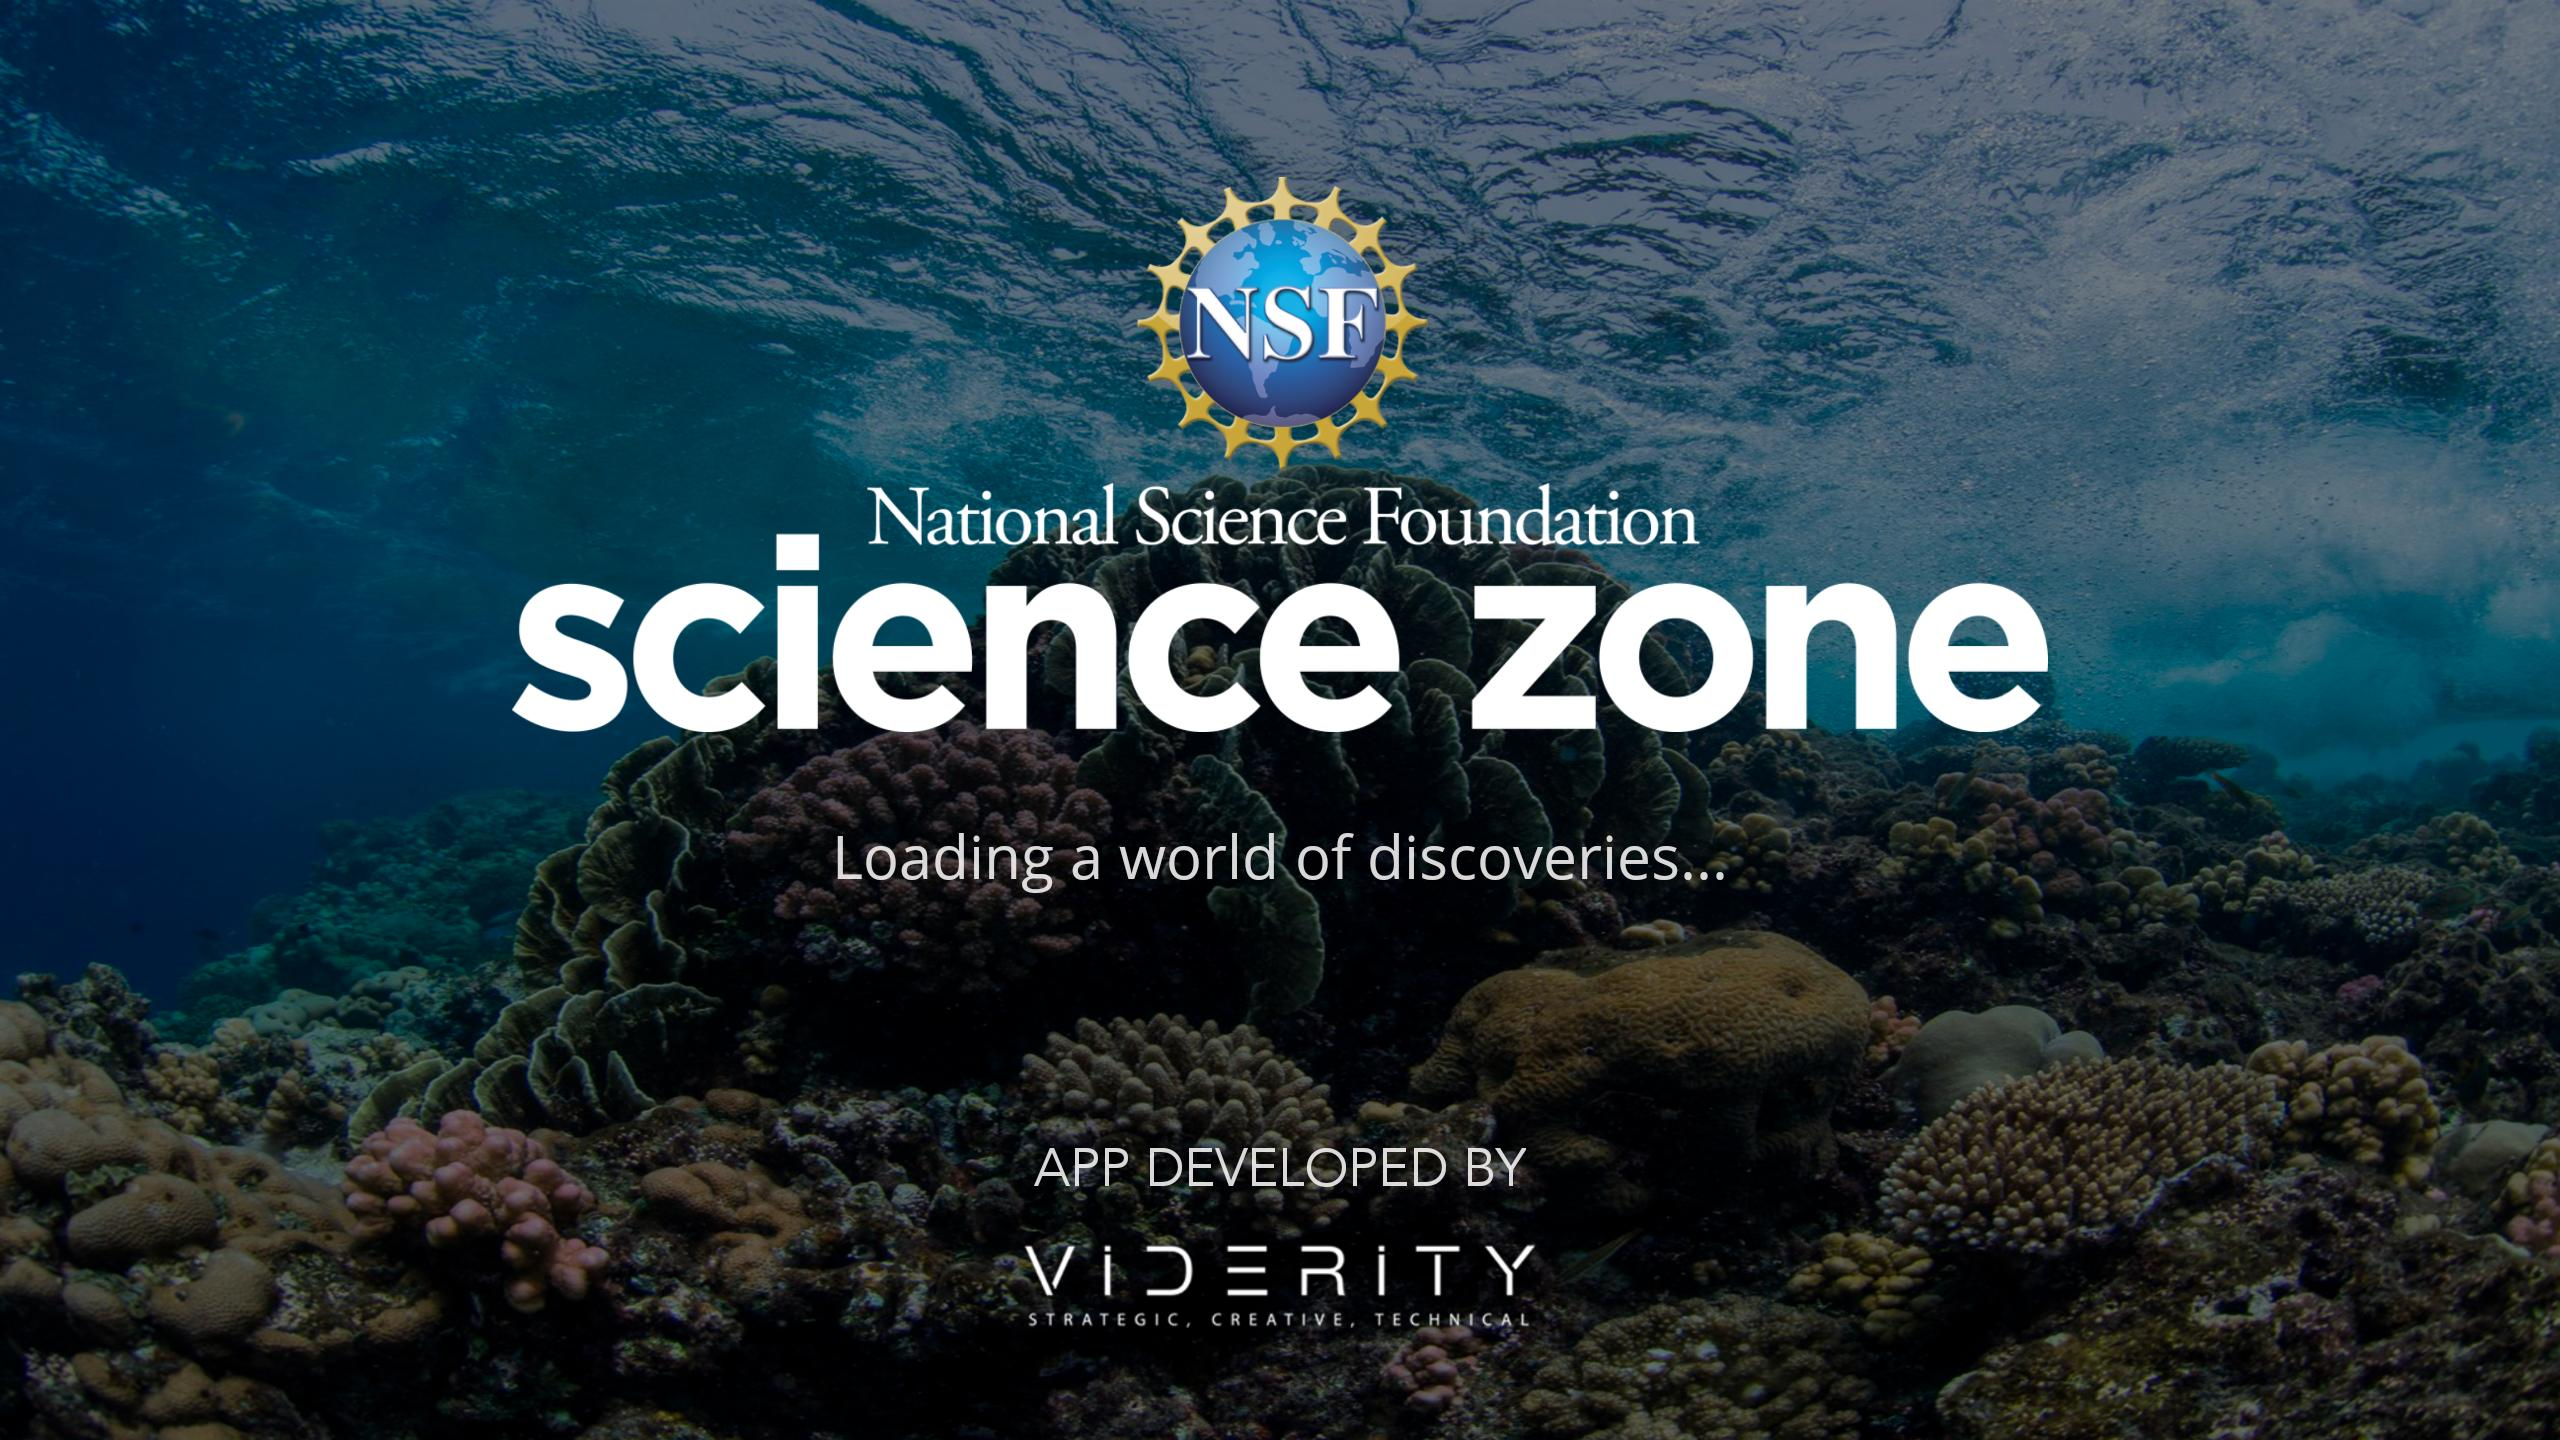 NSF Science Zone poster